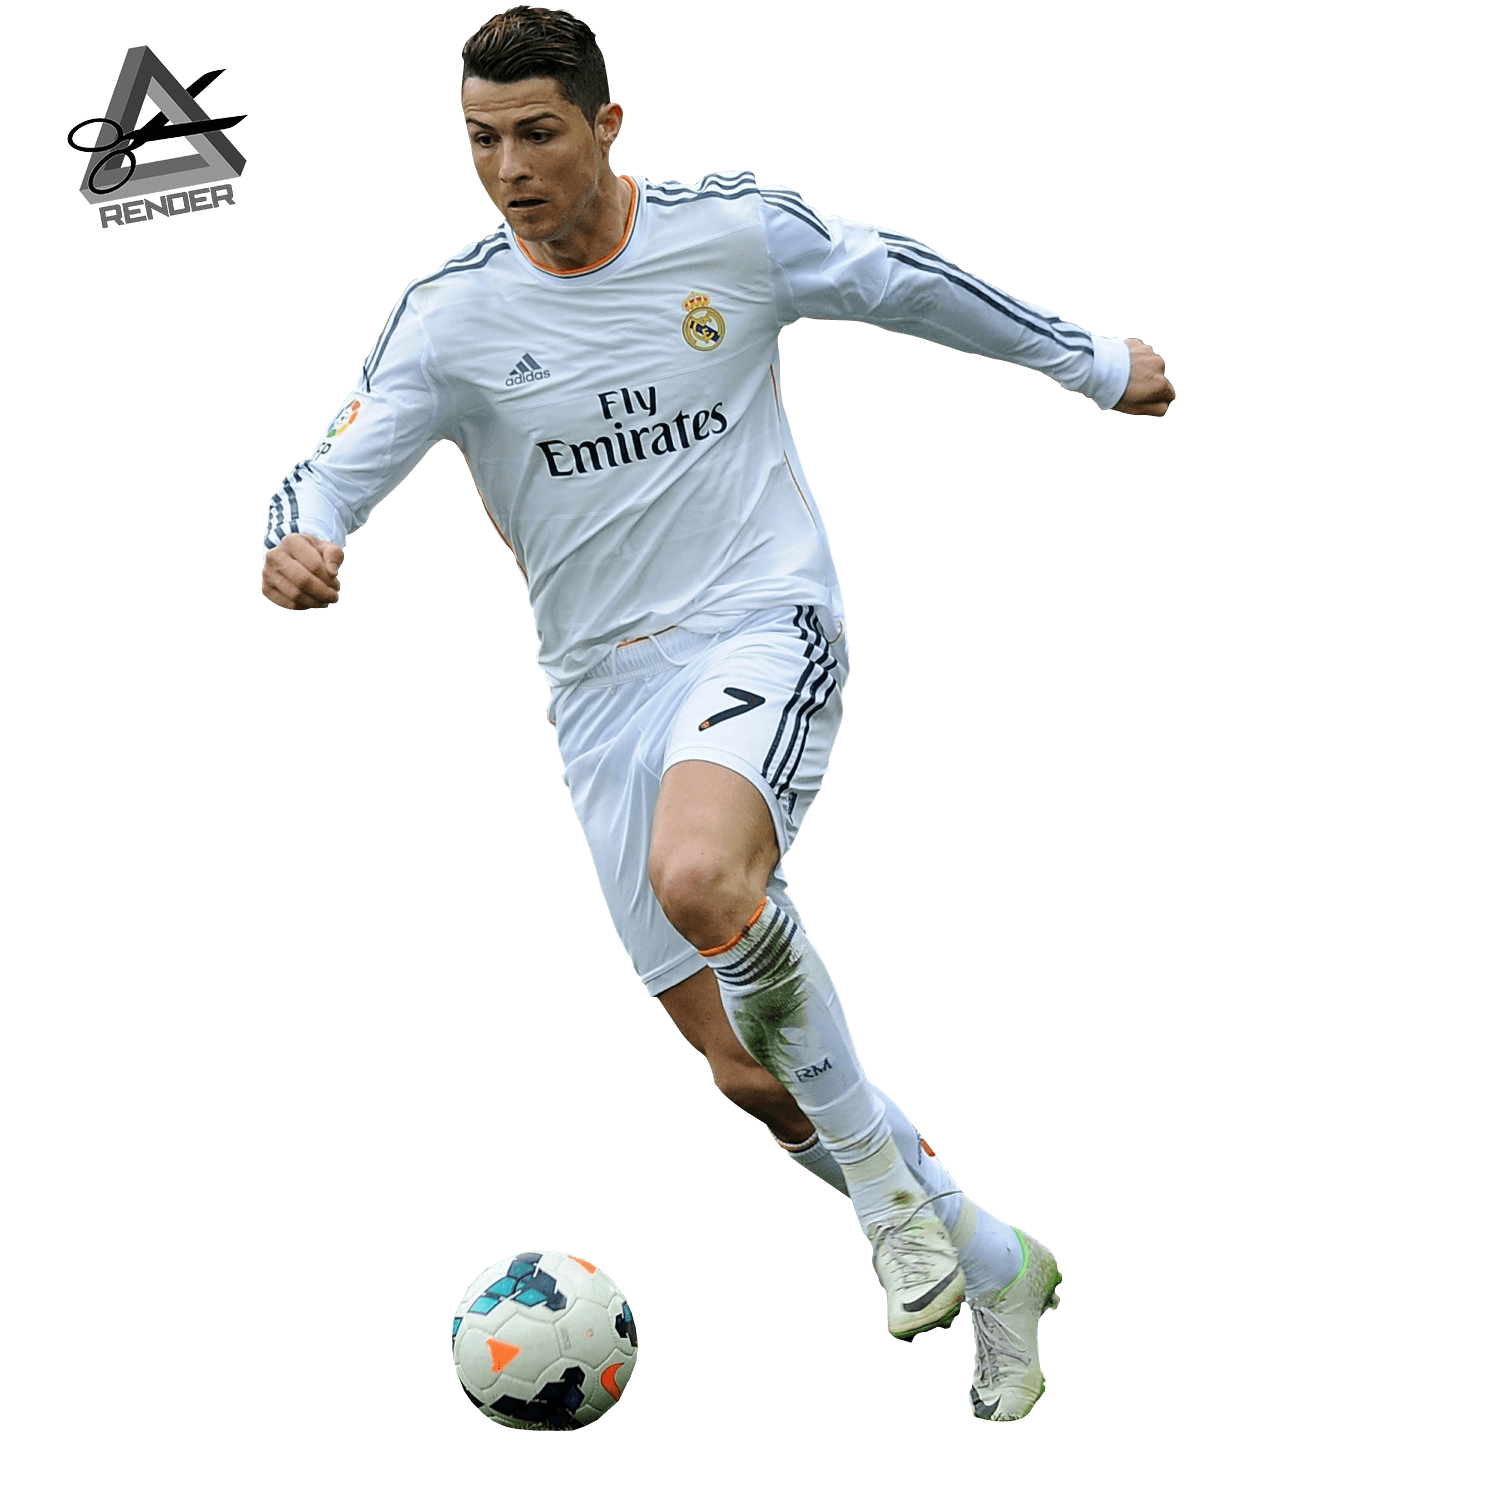 cristiano ronaldo wallpapers image